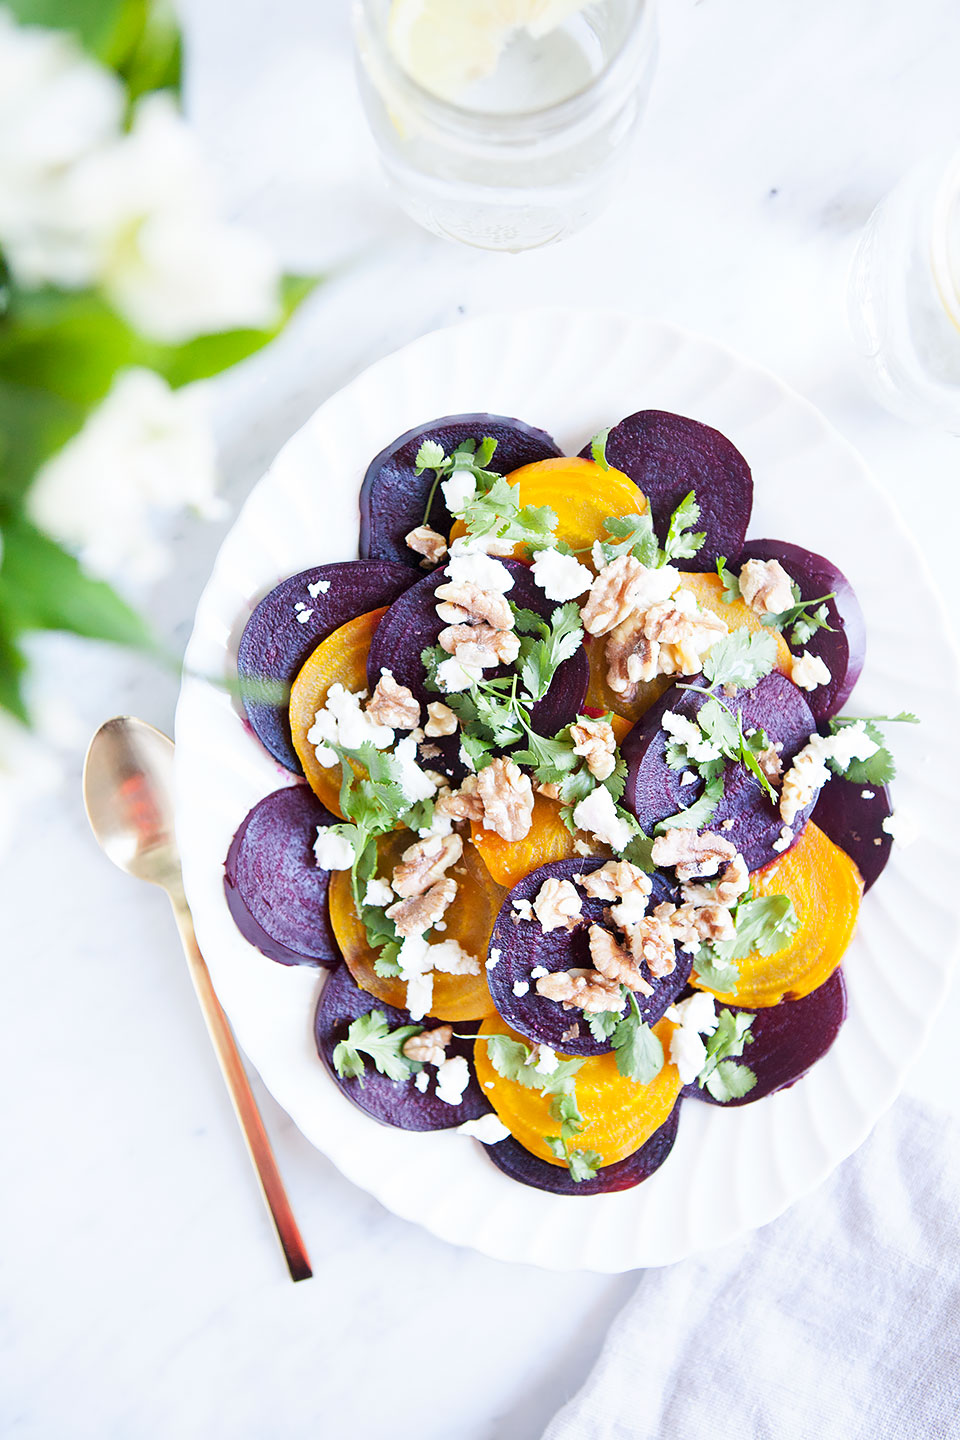 Beet, Goat Cheese, and Walnut Salad | Gluten-Free and Paleo. | Loveleaf Co.